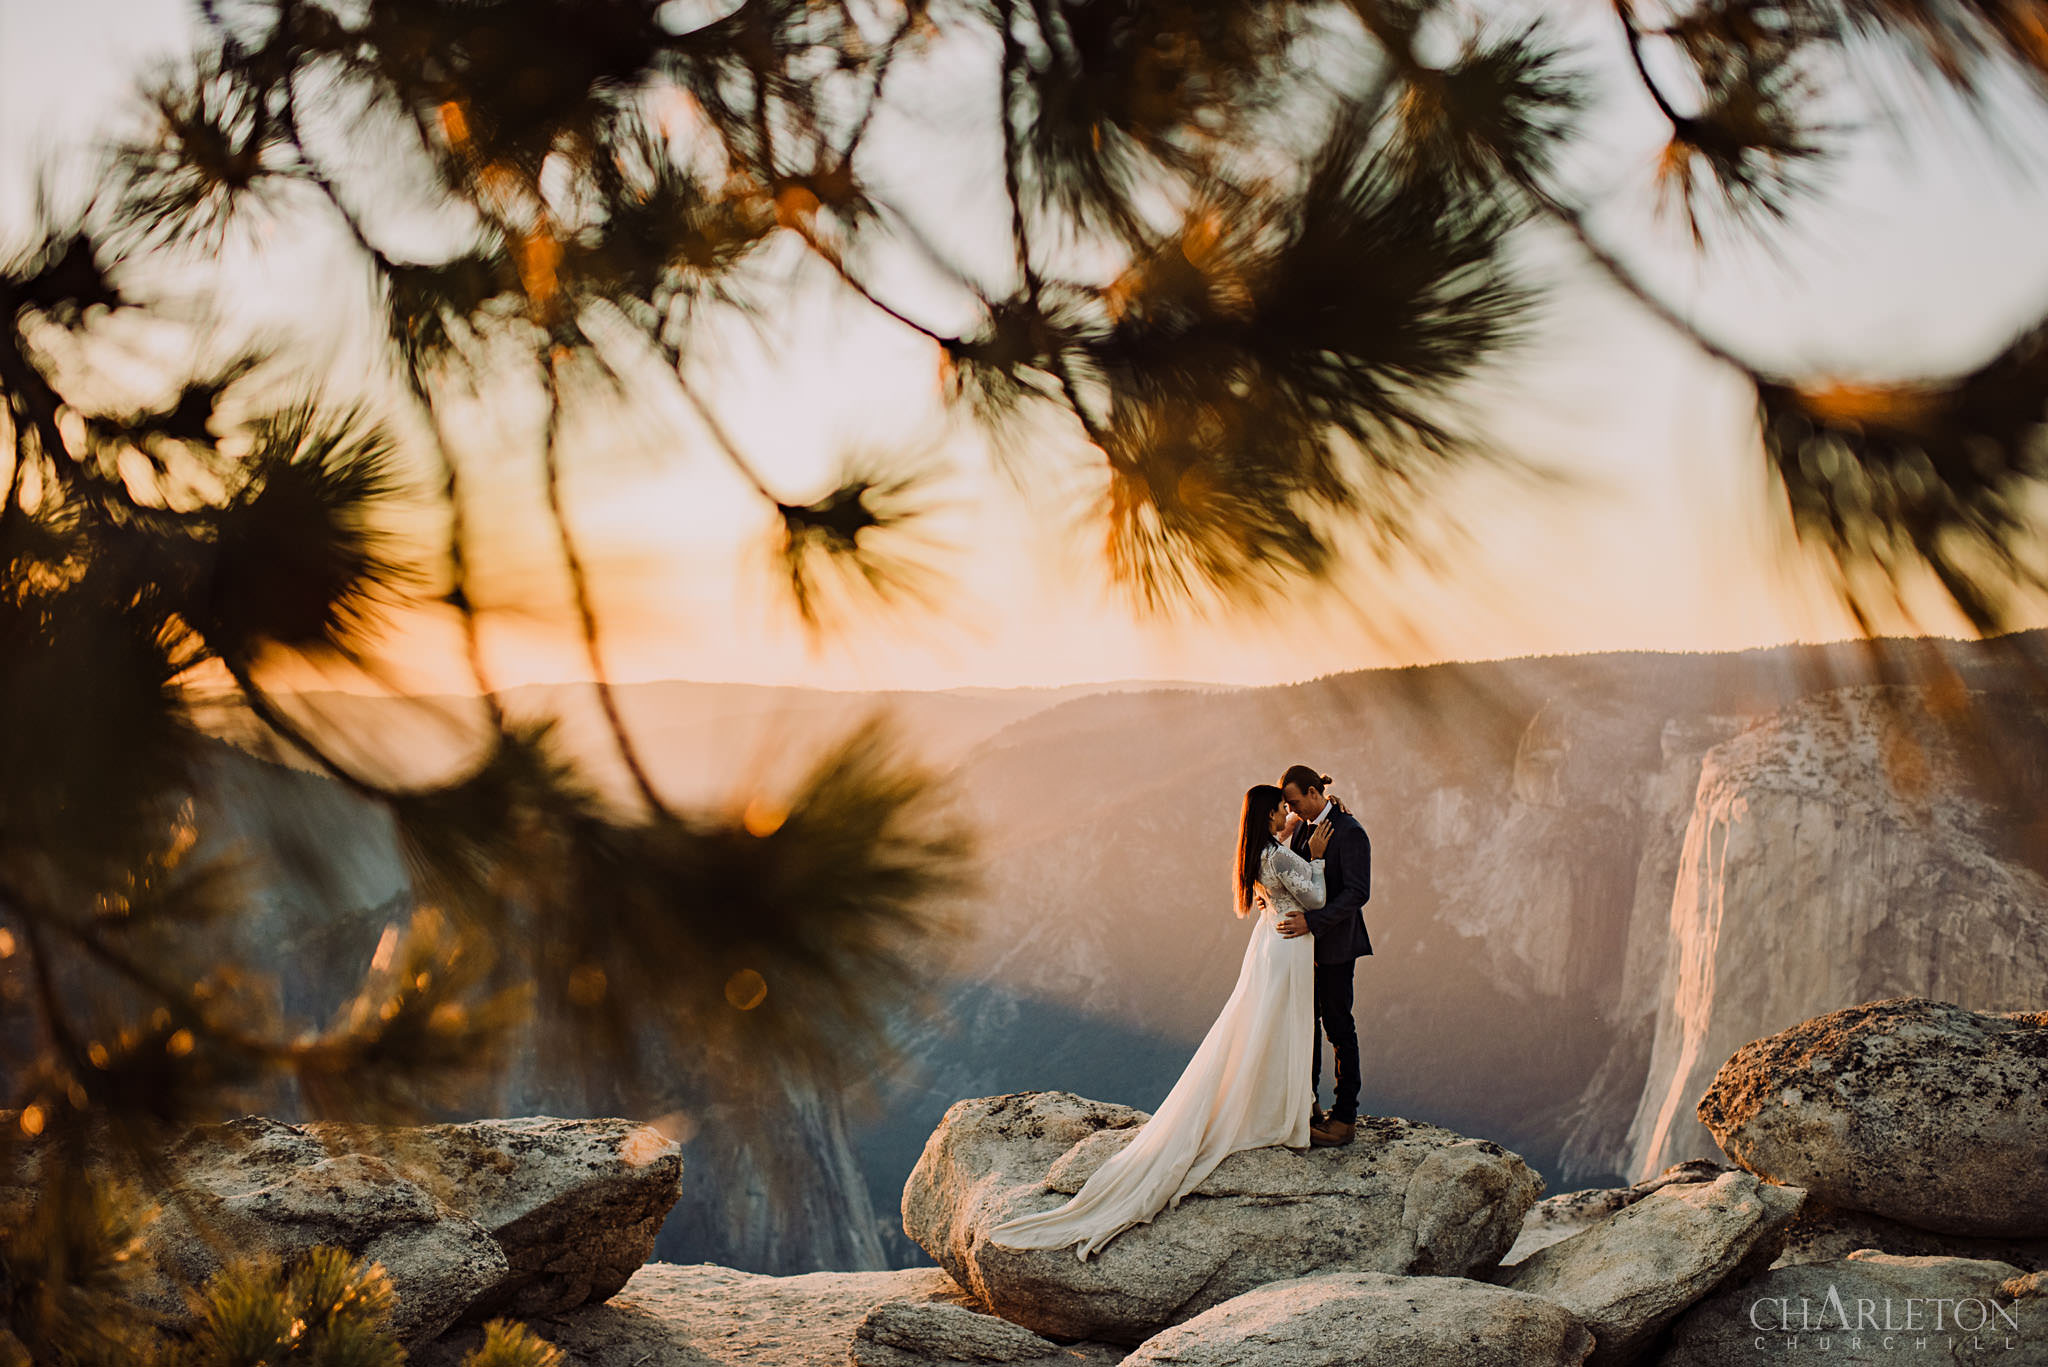 The Top Yosemite Wedding and elopement locations for couples getting married in the national park